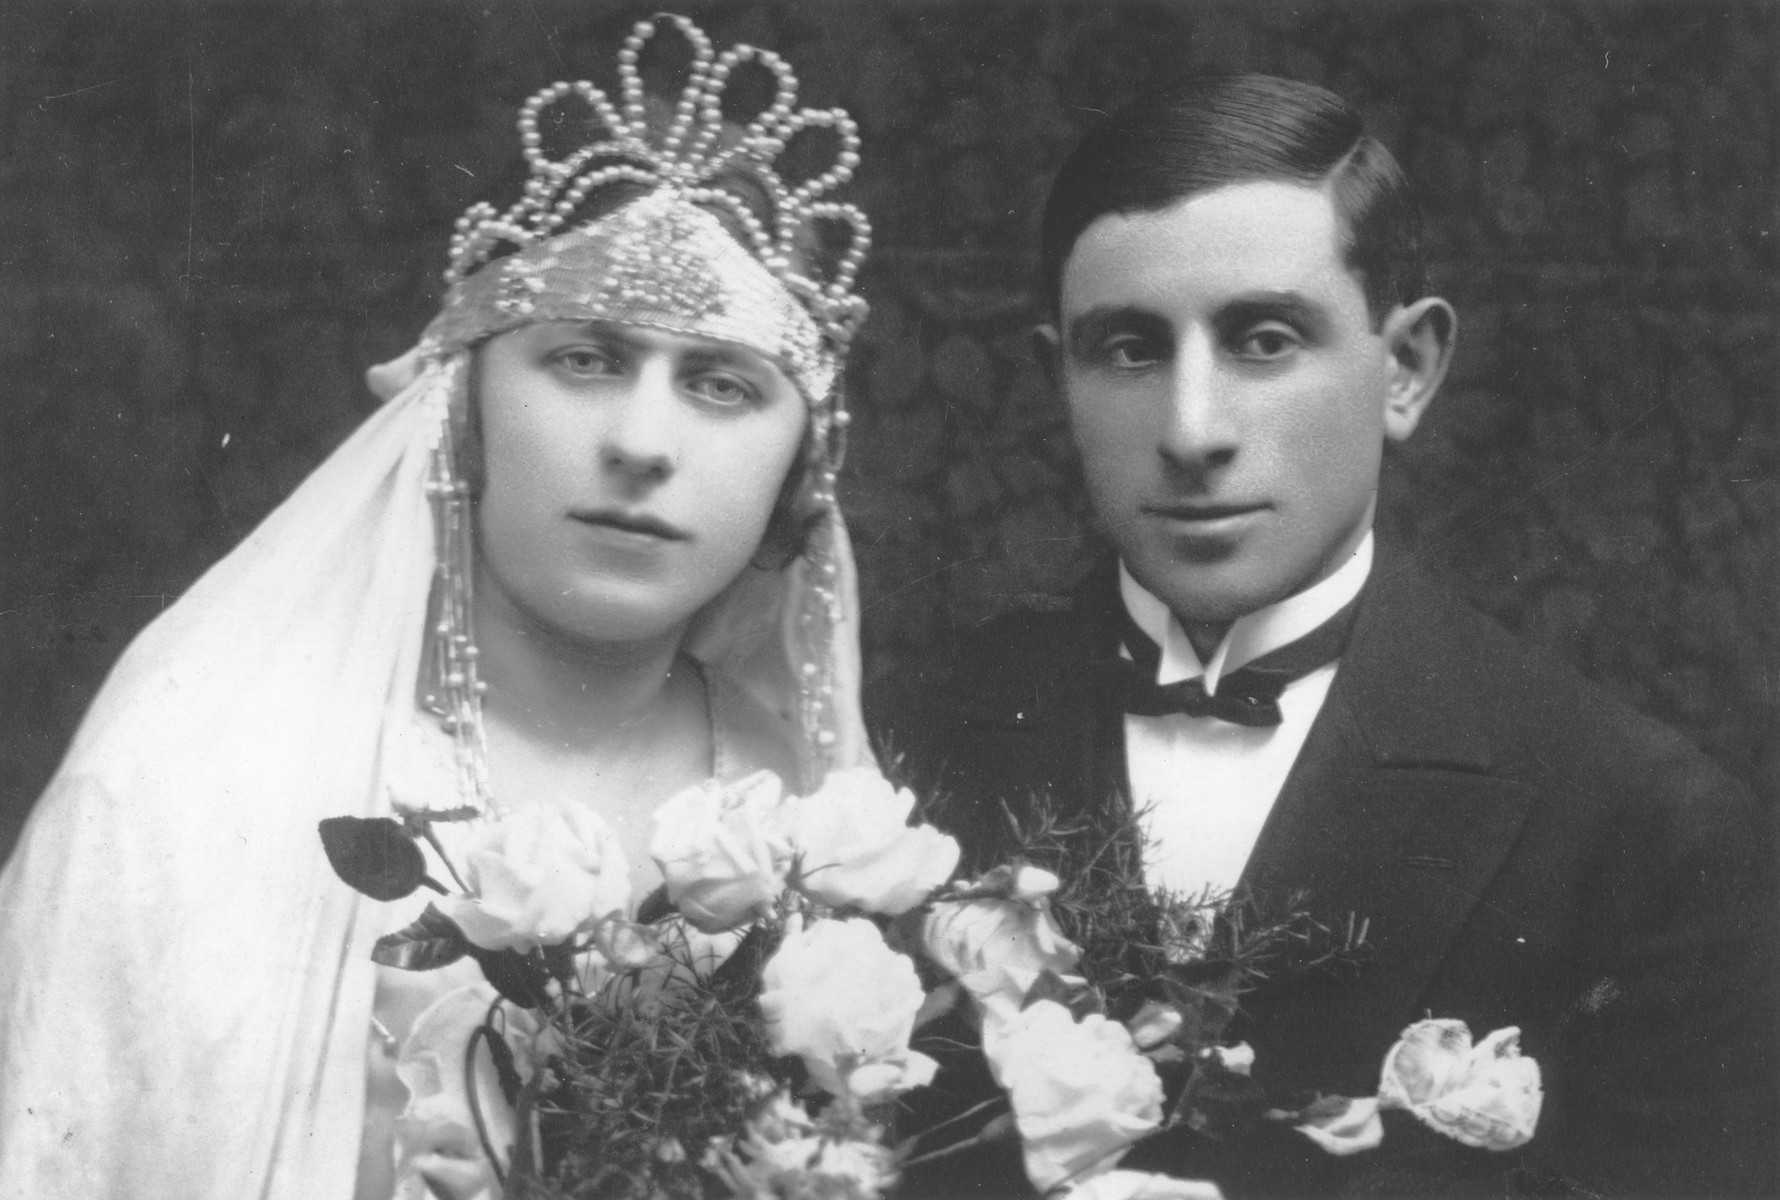 Wedding portrait of a Jewish couple in Lodz.  Pictured are Frida Szczukowski and Zanville Goldstein.